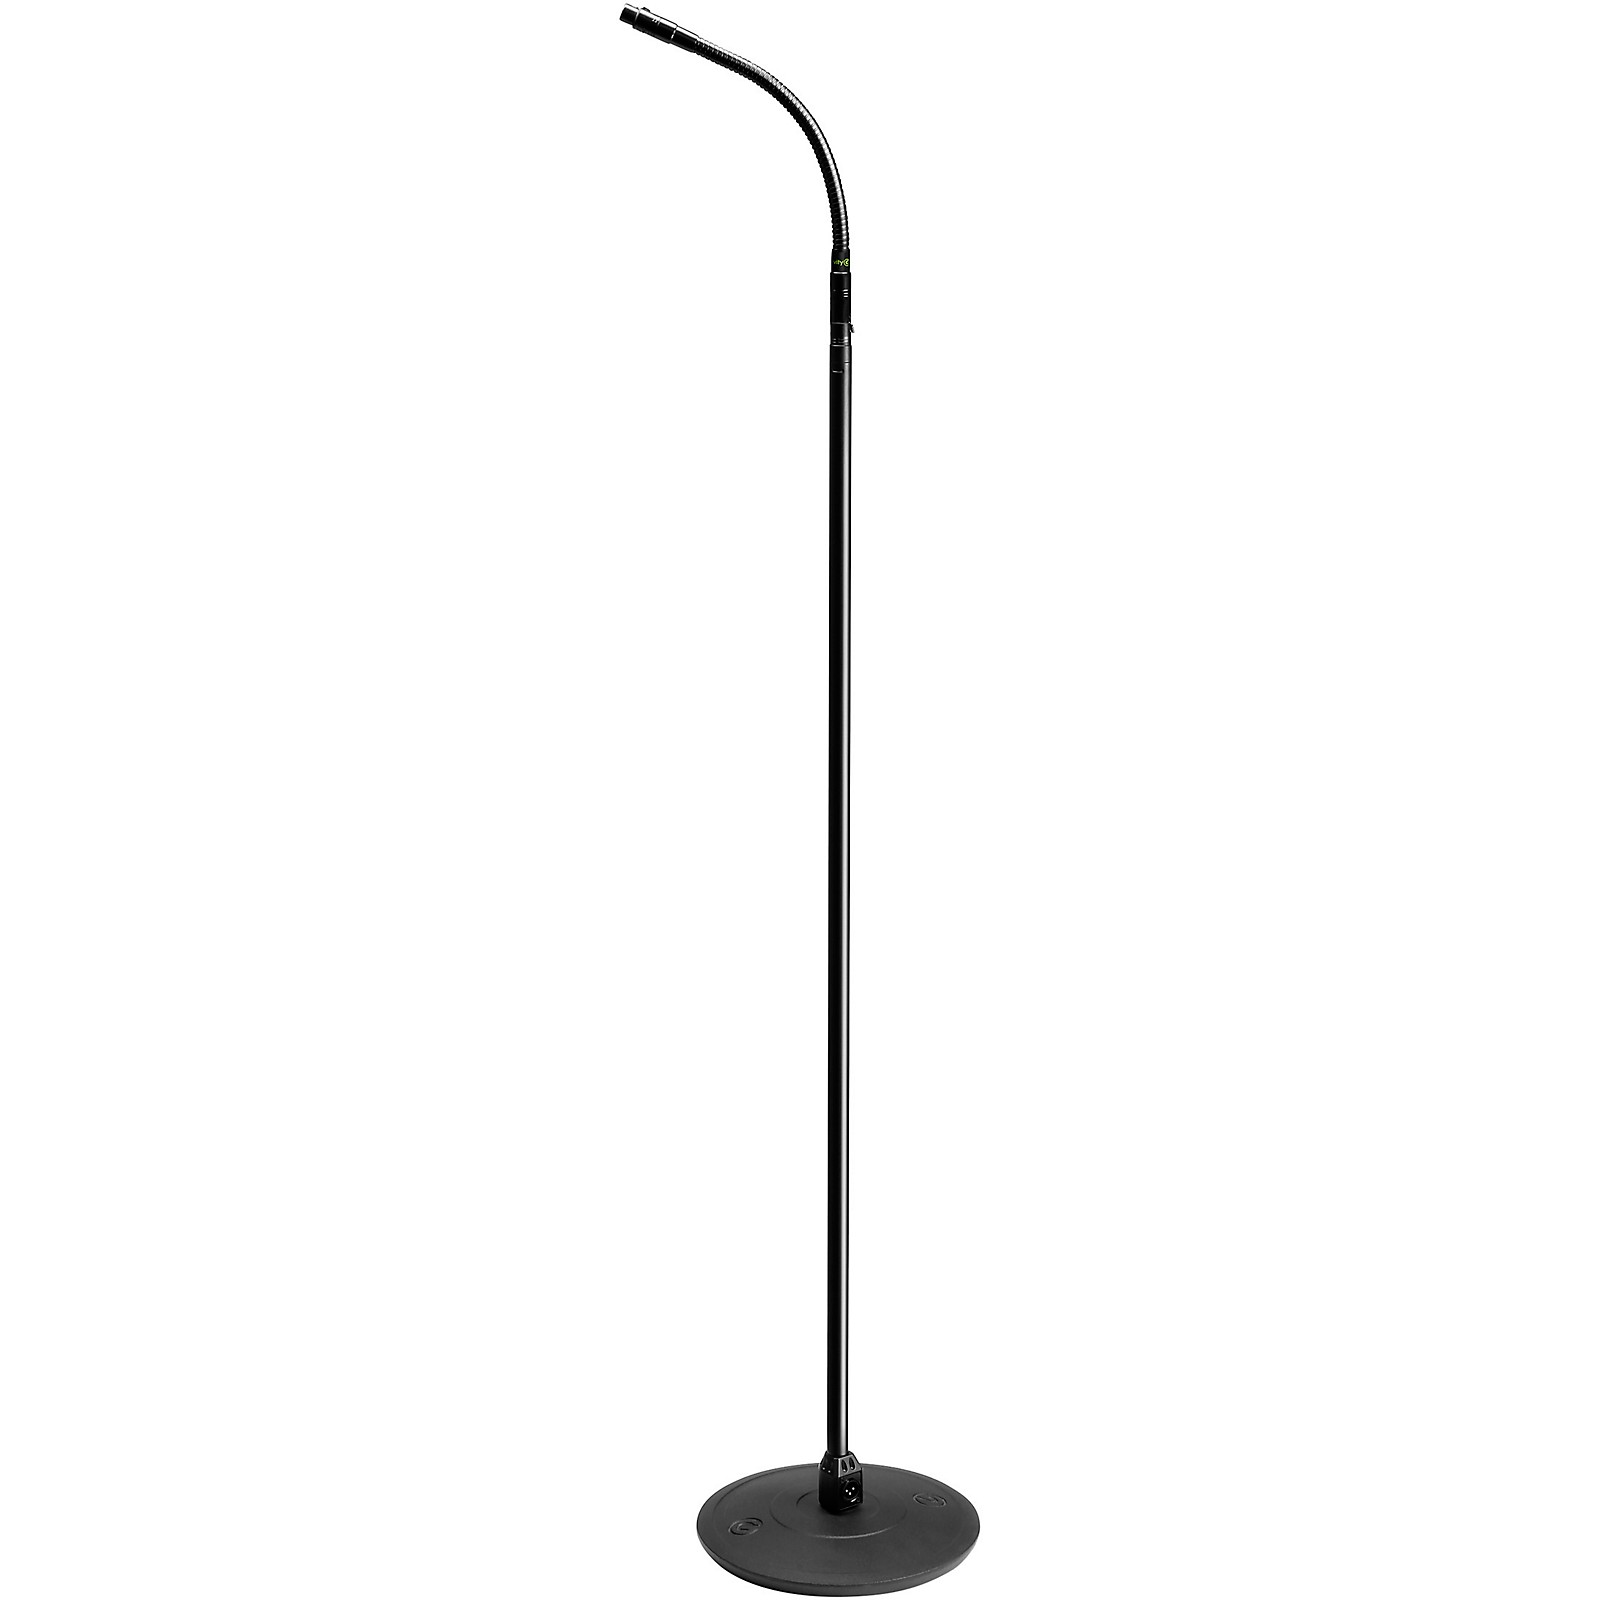 Gravity Stands Microphone Stand With Round Base, XLR Connector and Gooseneck